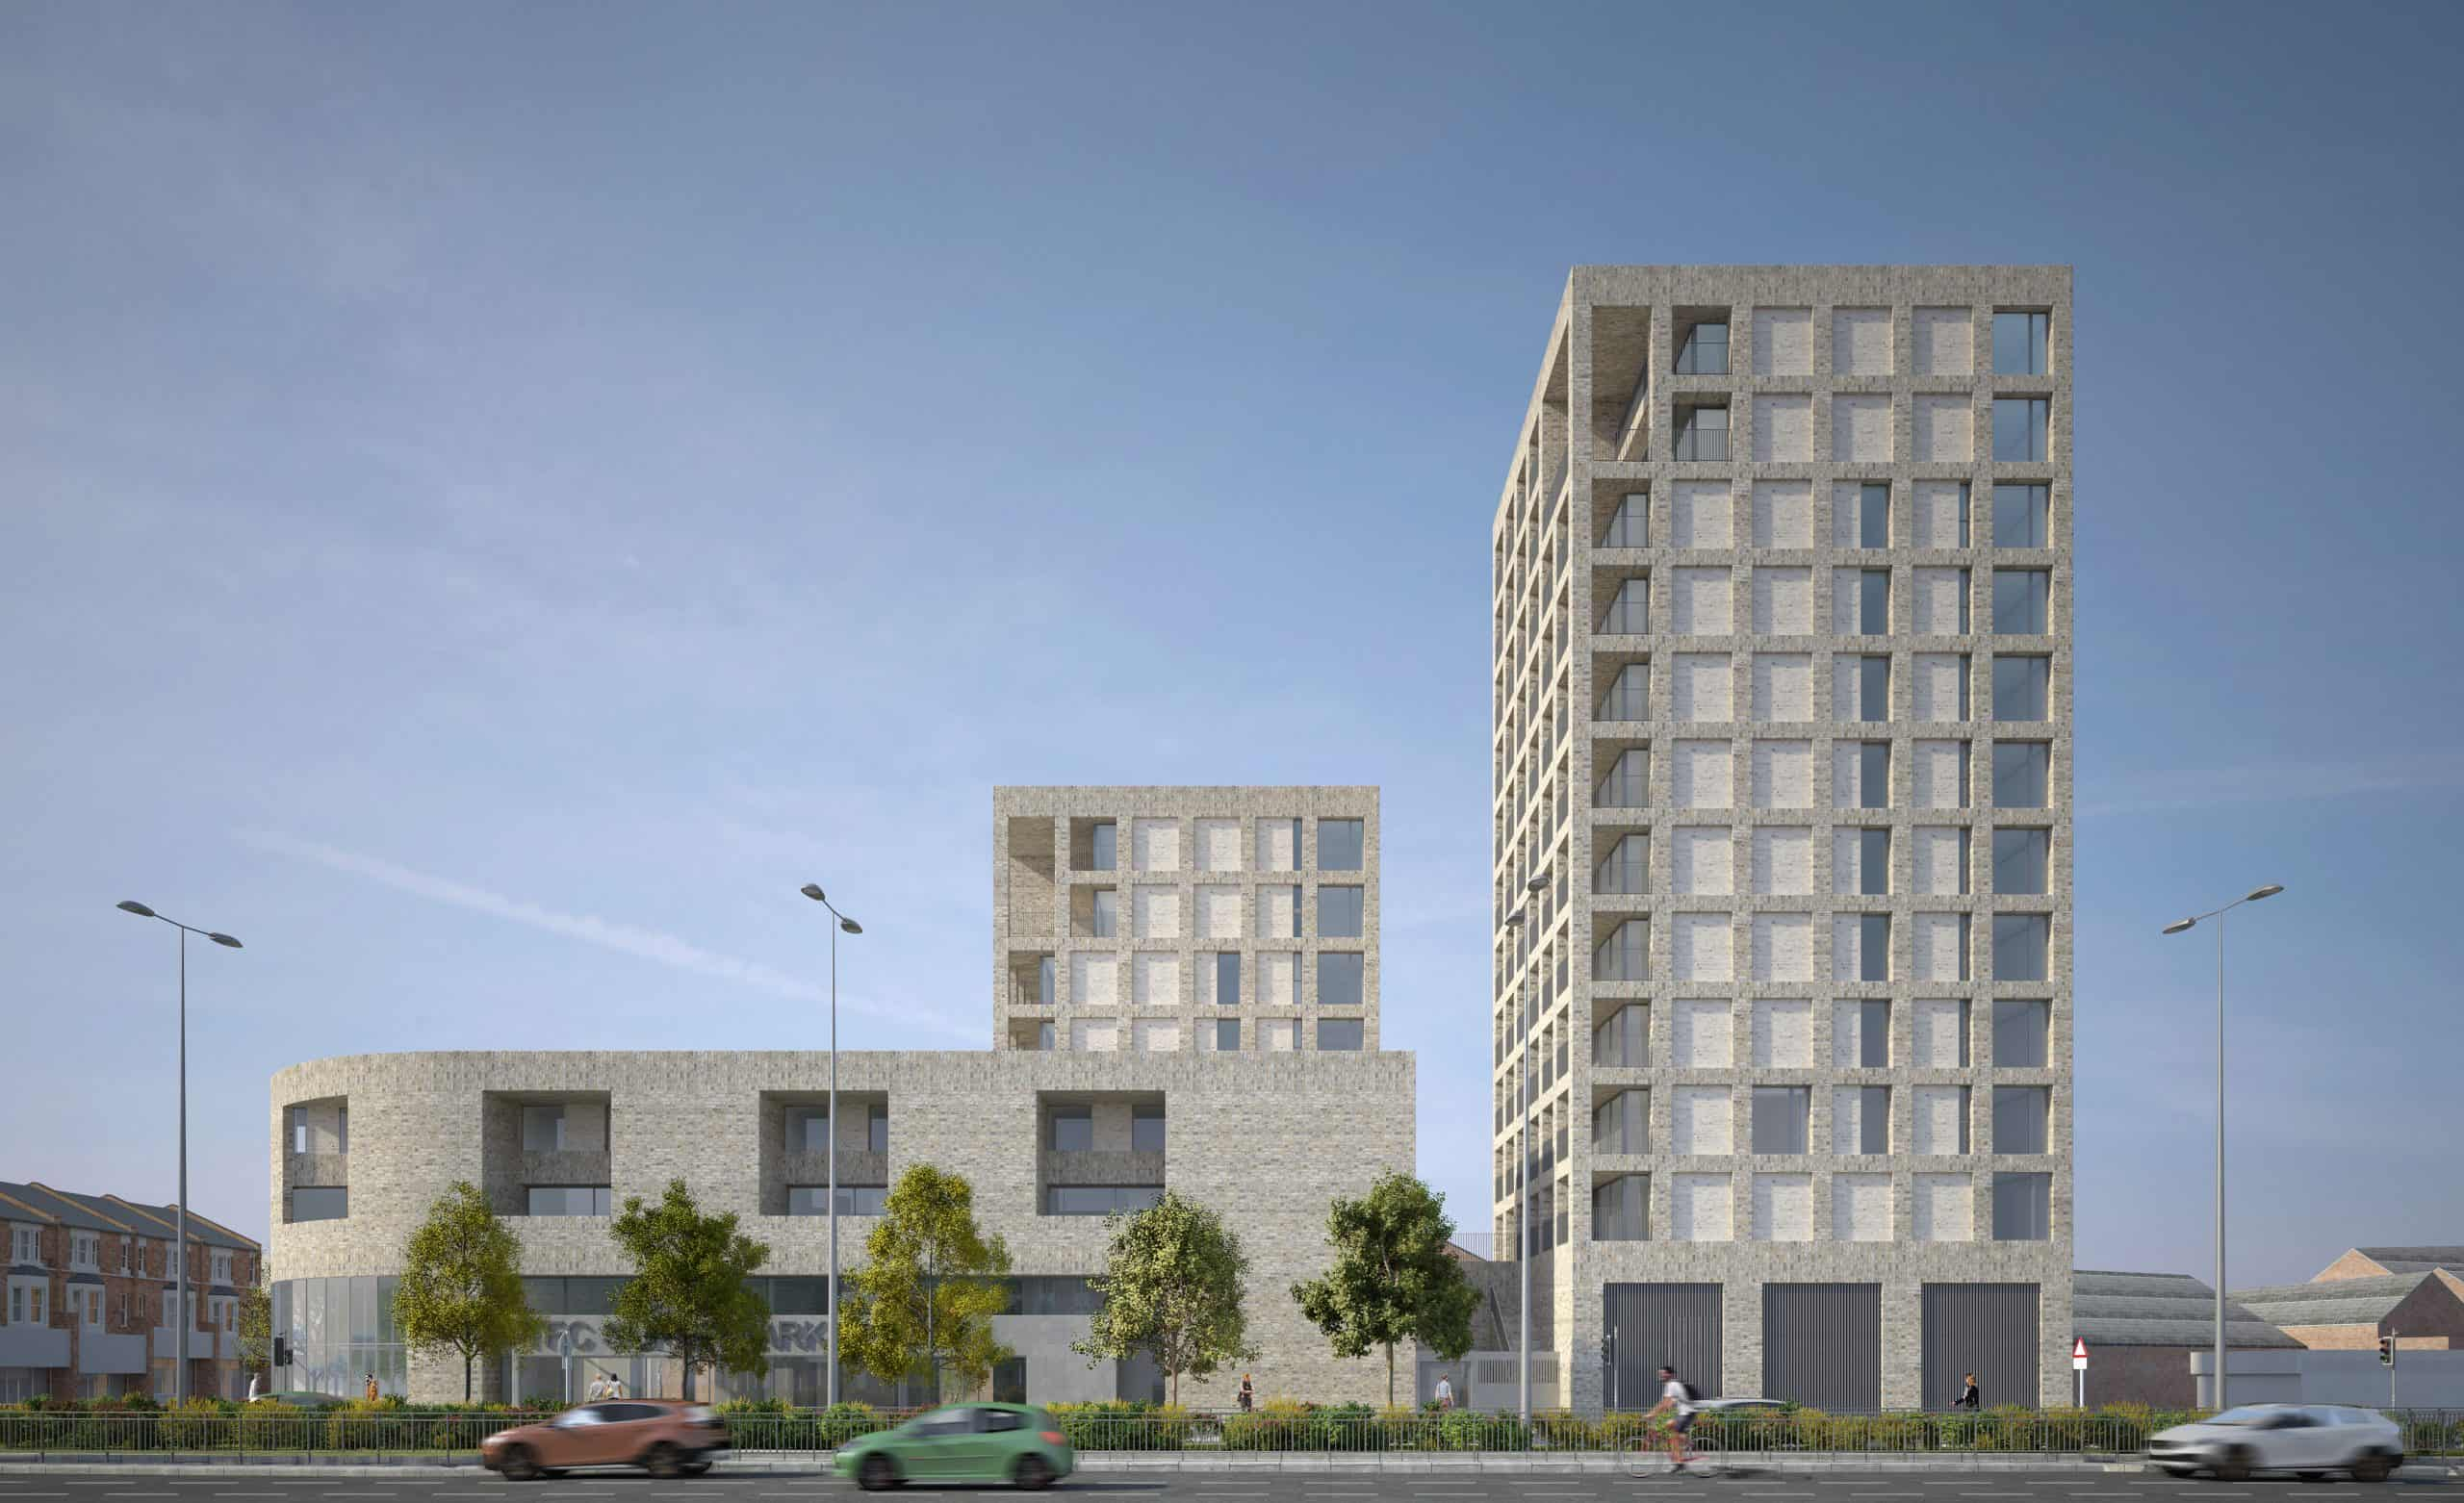 The design for the twelve-storey development on the corner of Green Lanes and the North Circular